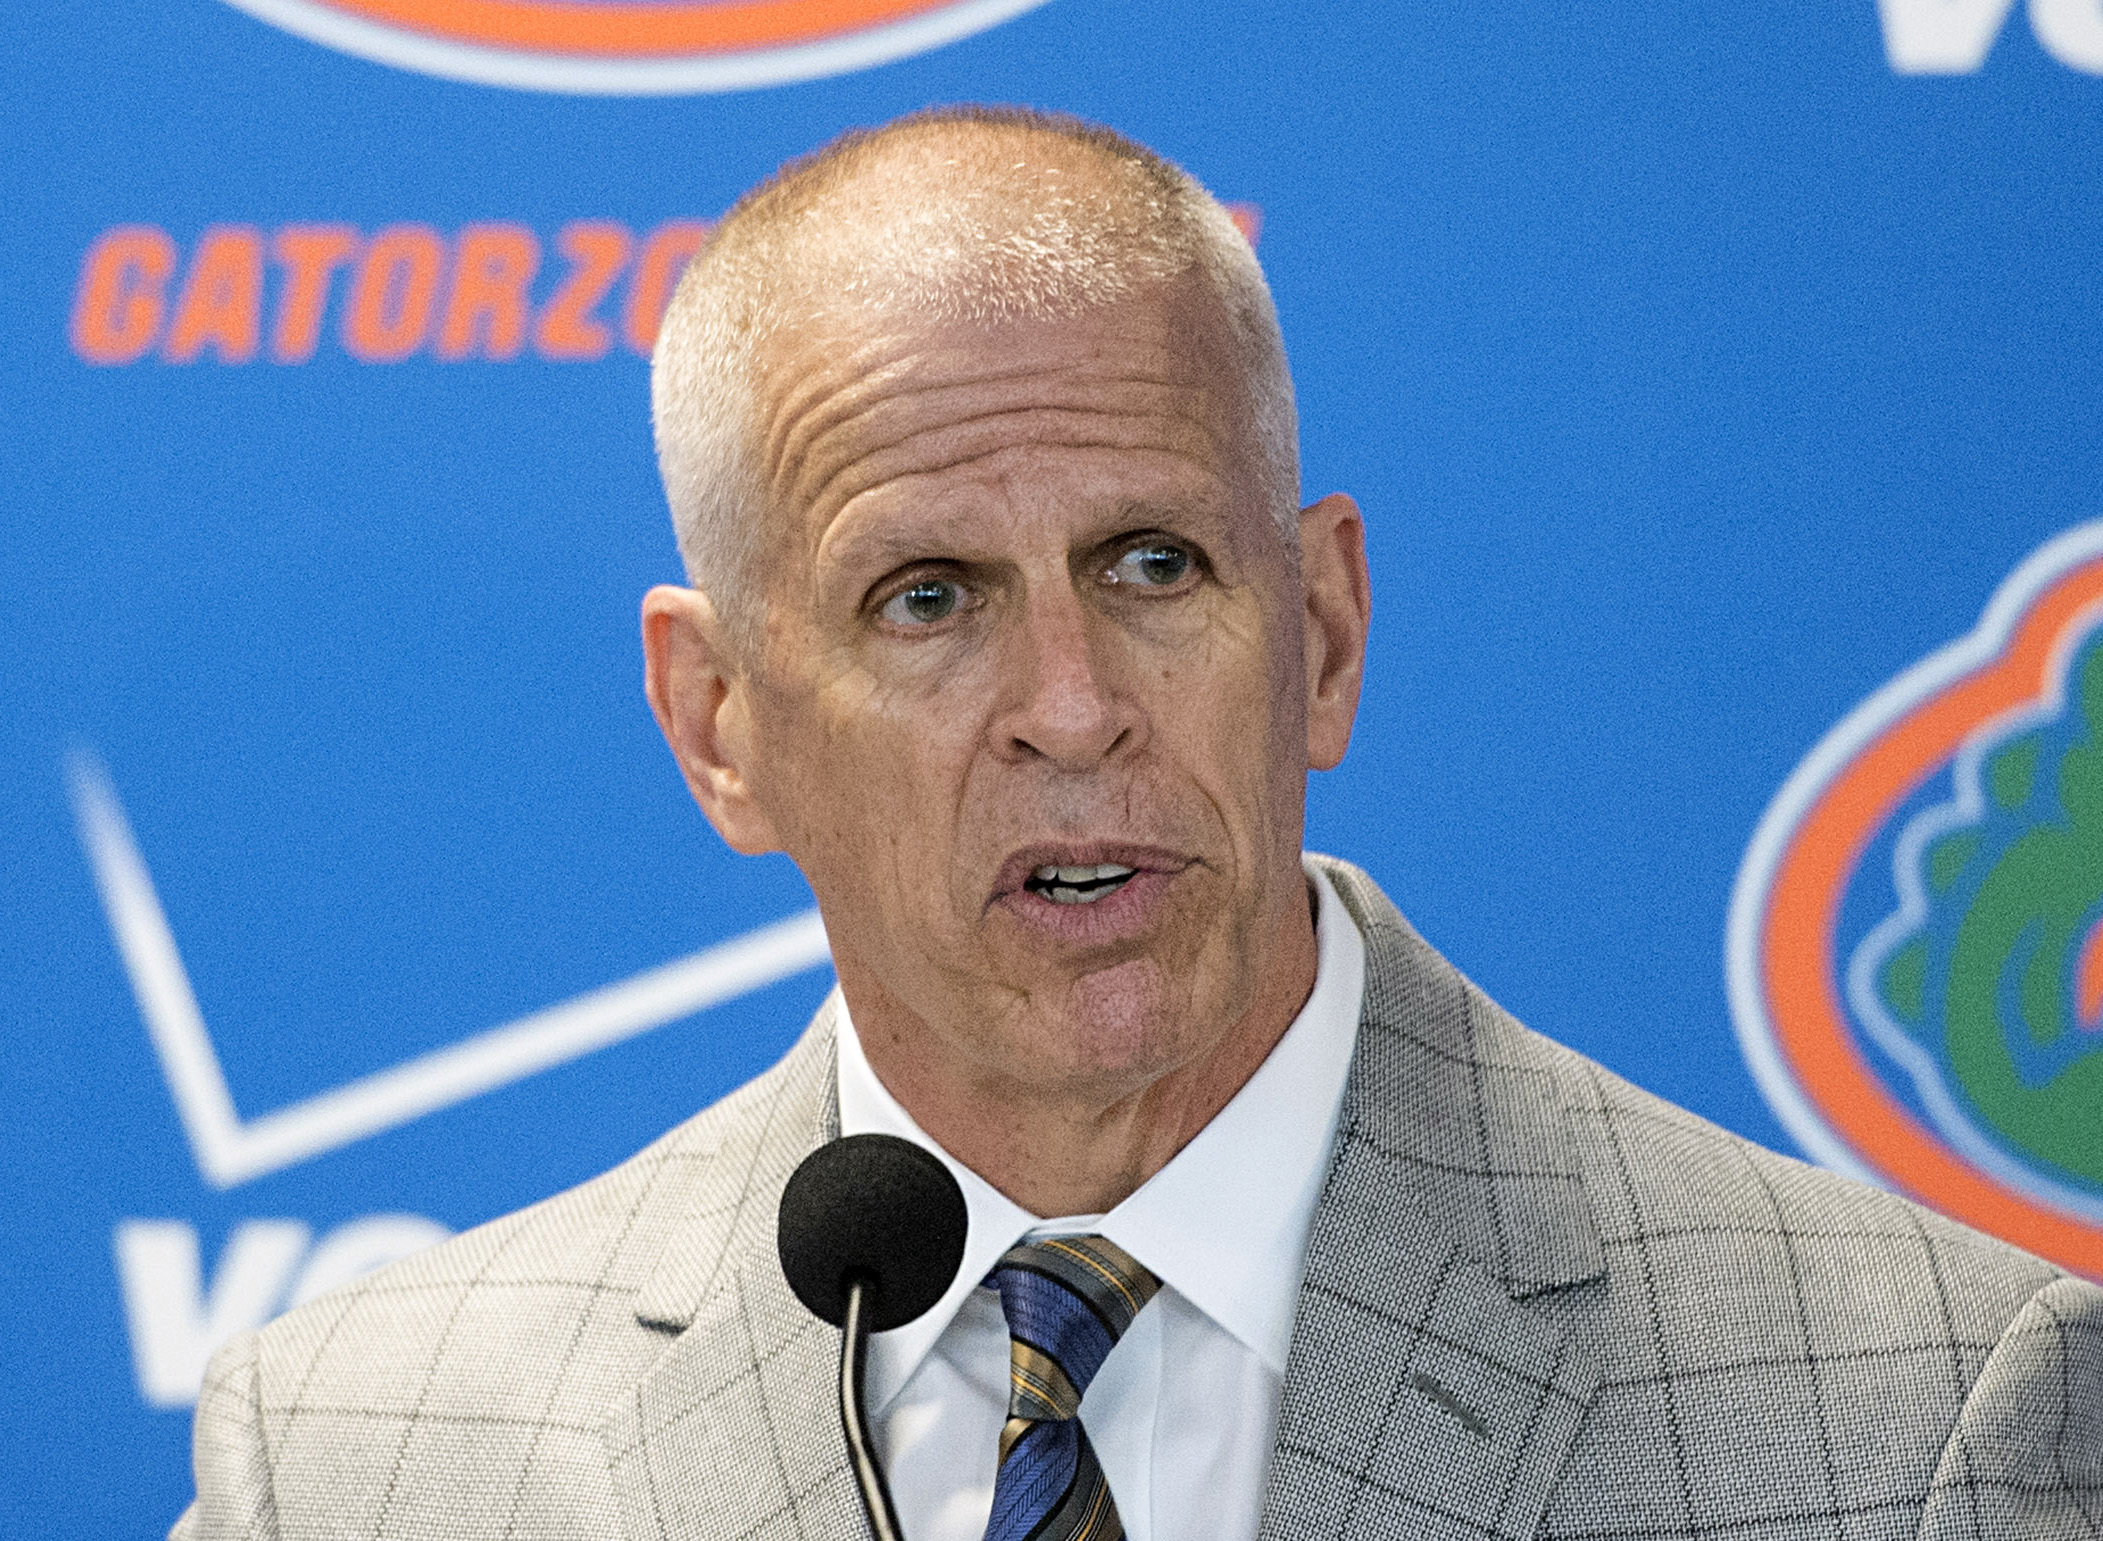 FILE - In this Dec. 6, 2014, file photo, Florida athletic director Jeremy Foley speaks to the media during a press conference in Gainesville, Fla. Foley, one of the most successful college sports leaders in the country the last 25 years, is retiring. The